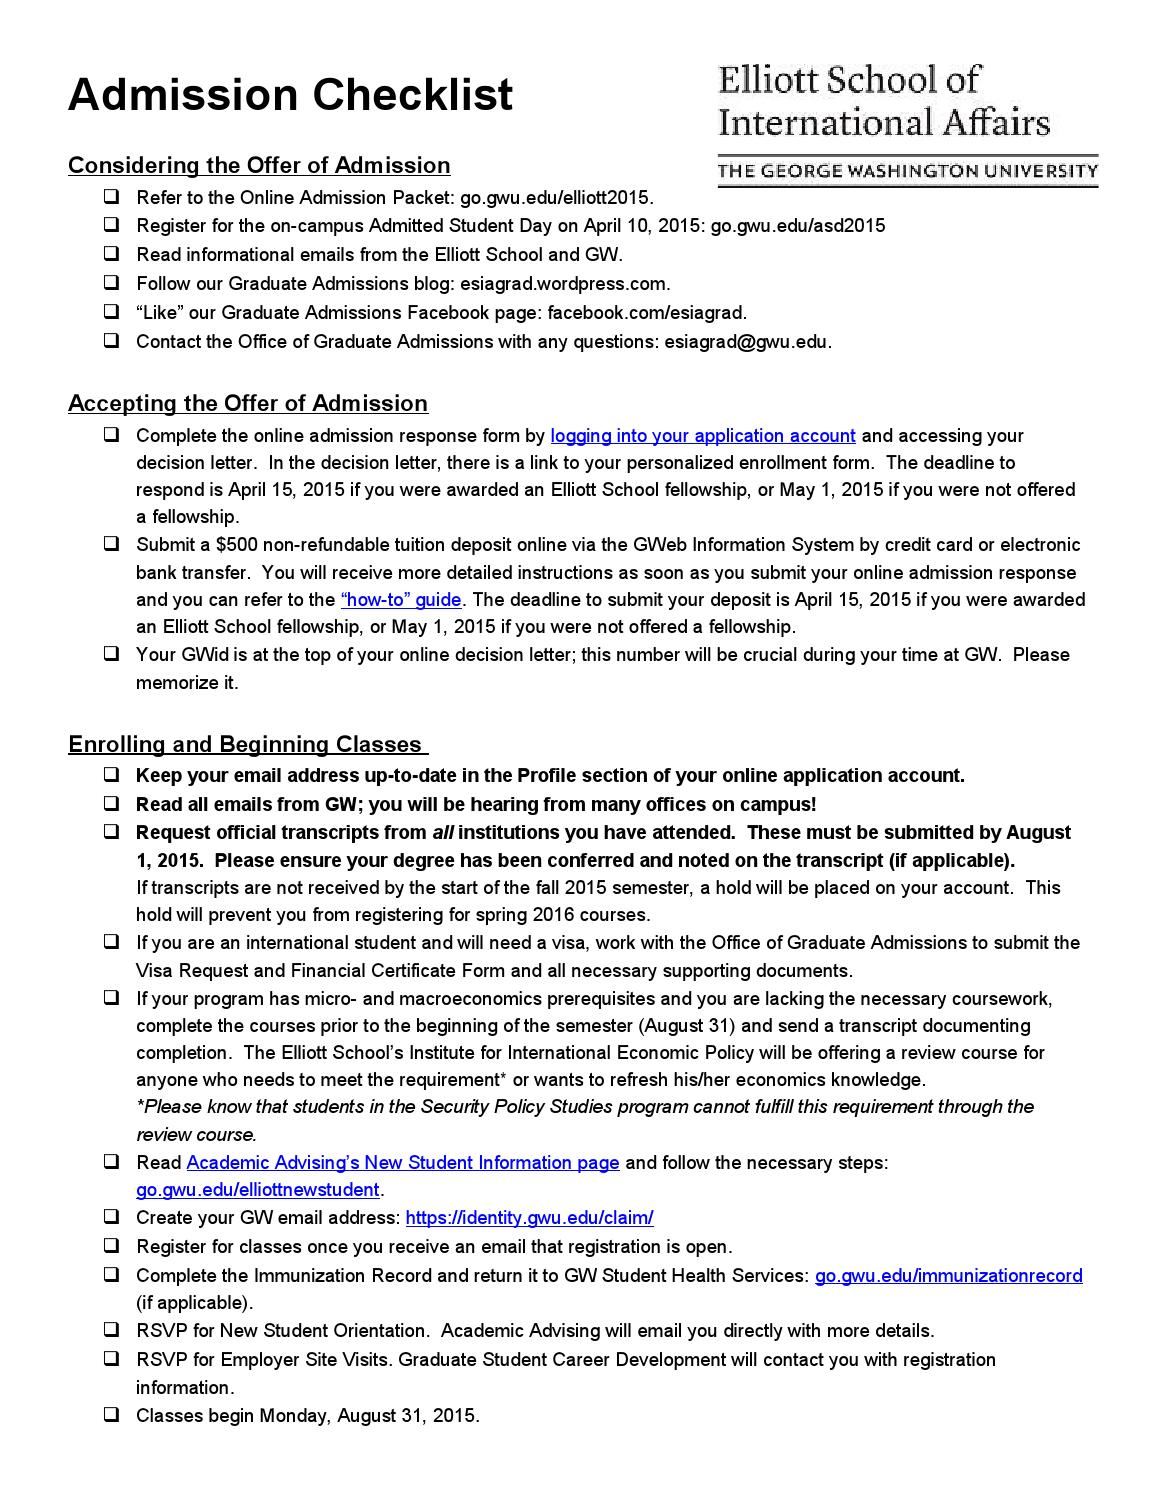 Admitted Student Checklist by esiagrad - issuu